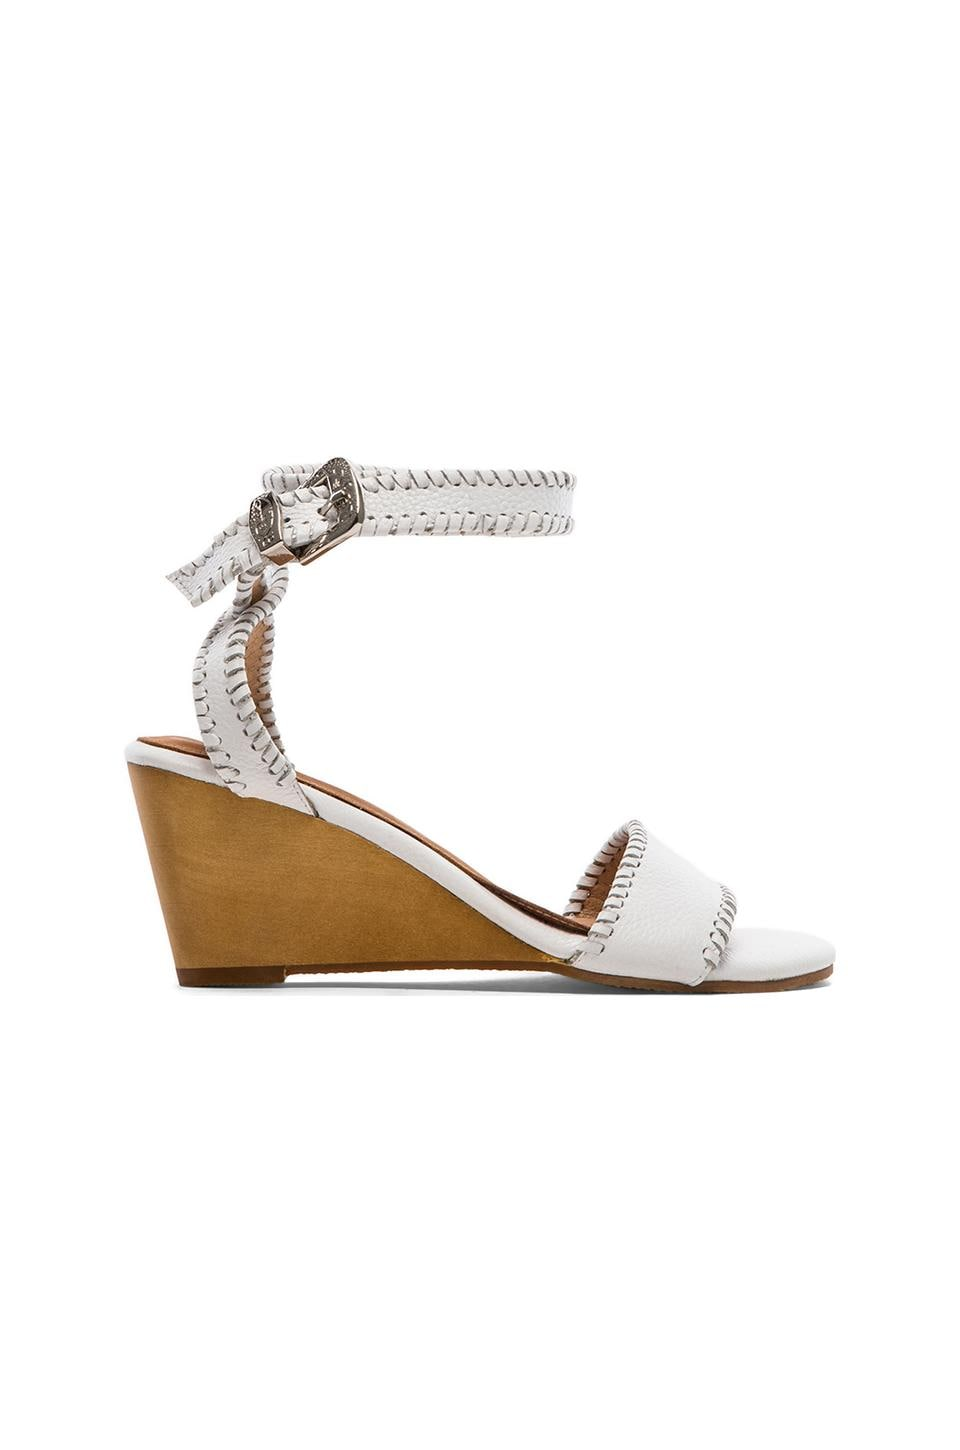 MADISON HARDING Dizzy Ankle Wedge in White Tumbled Leather